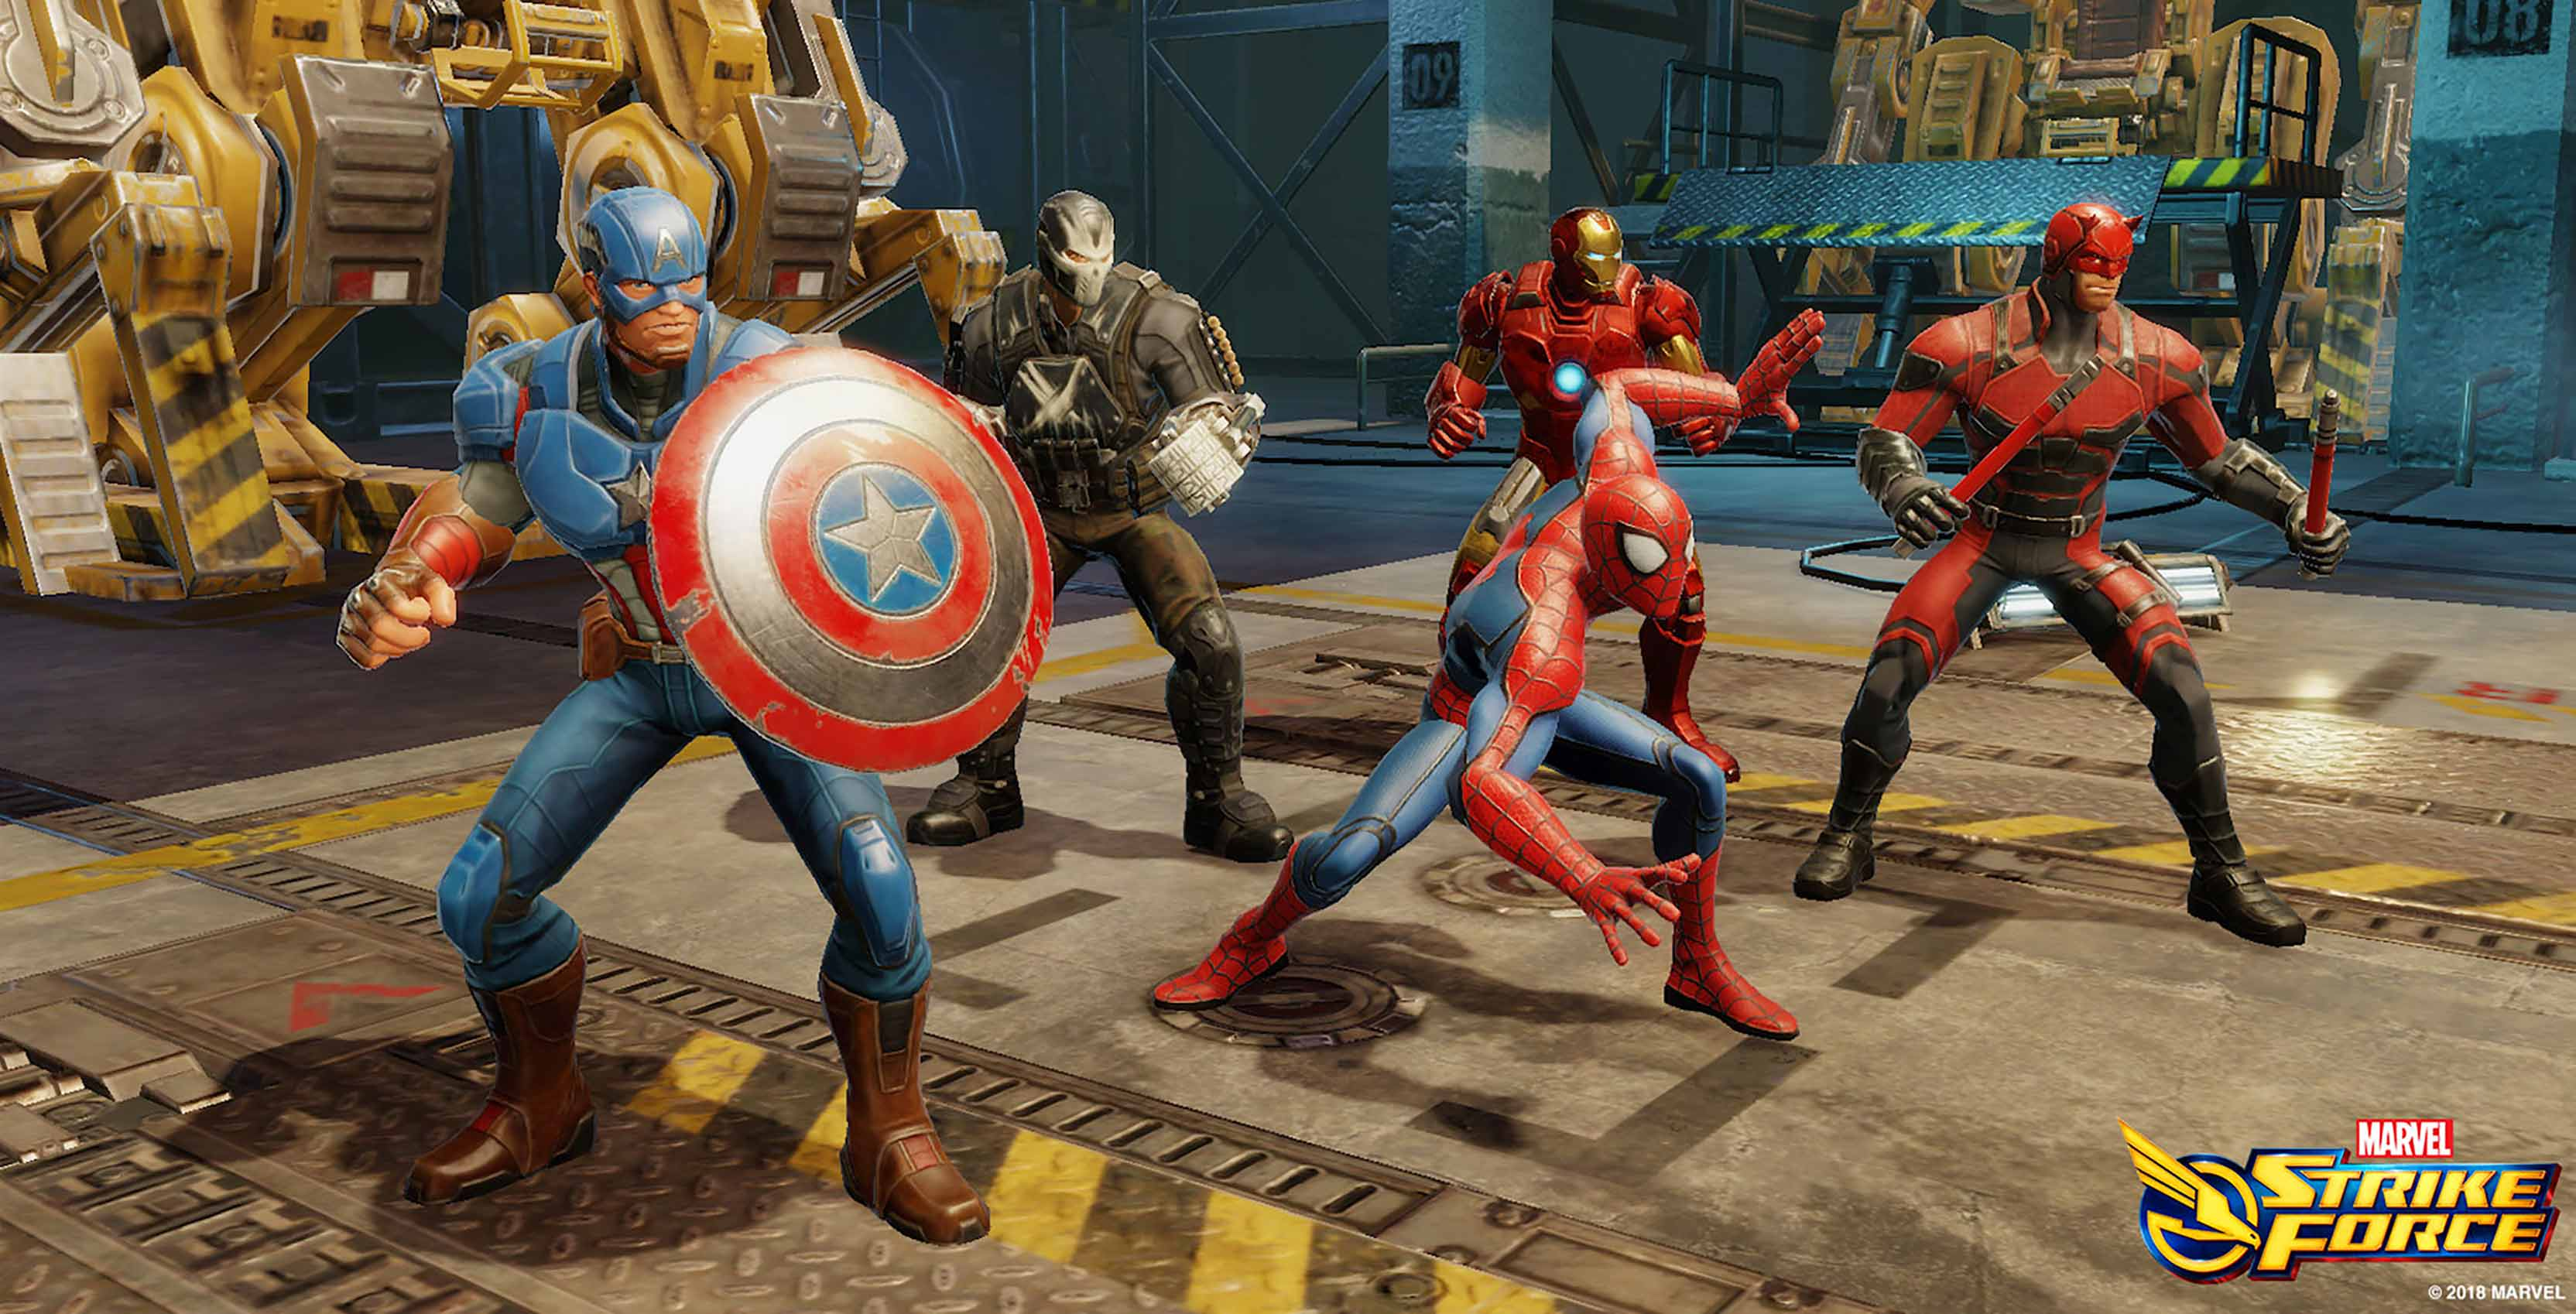 Marvel Strike Force characters